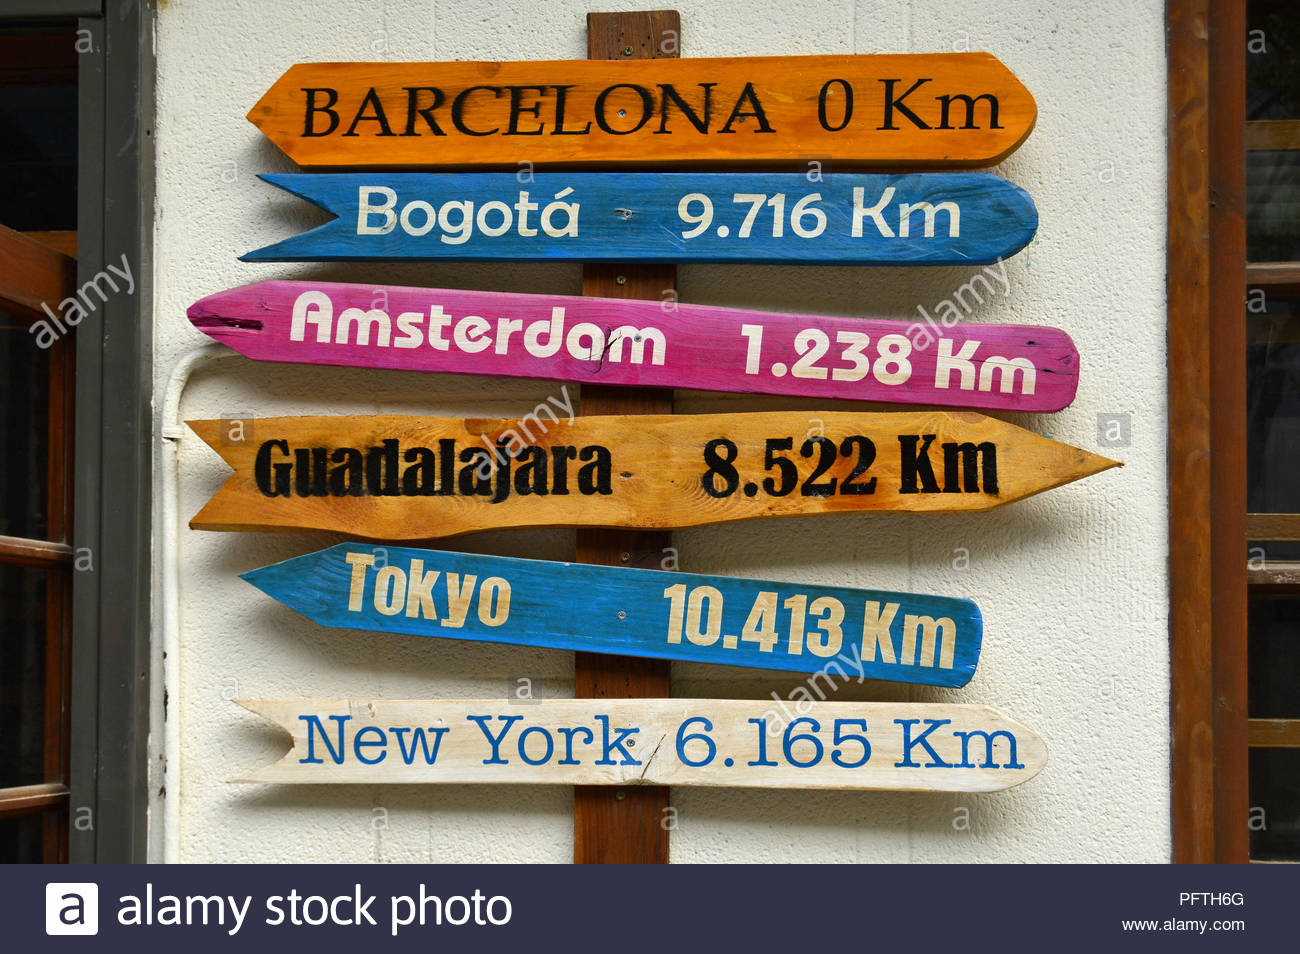 Cities destinations distance direction sign in Barcelona Spain Europe. - Stock Image